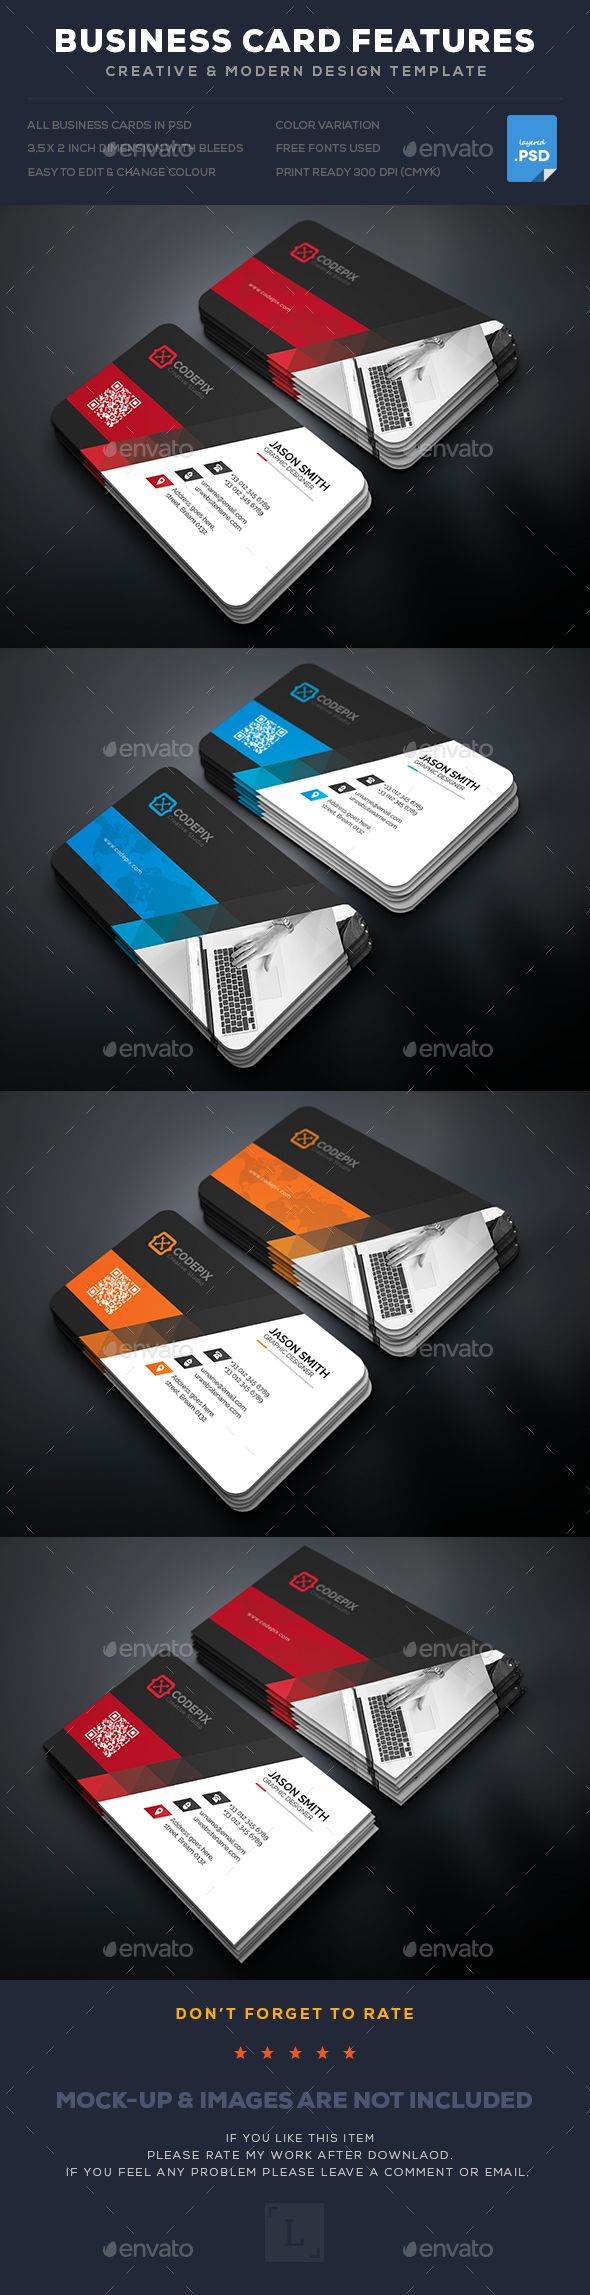 Corporate Business Card Template PSD. Download here: https://graphicriver.net/item/corporate-business-card/17507638?ref=ksioks